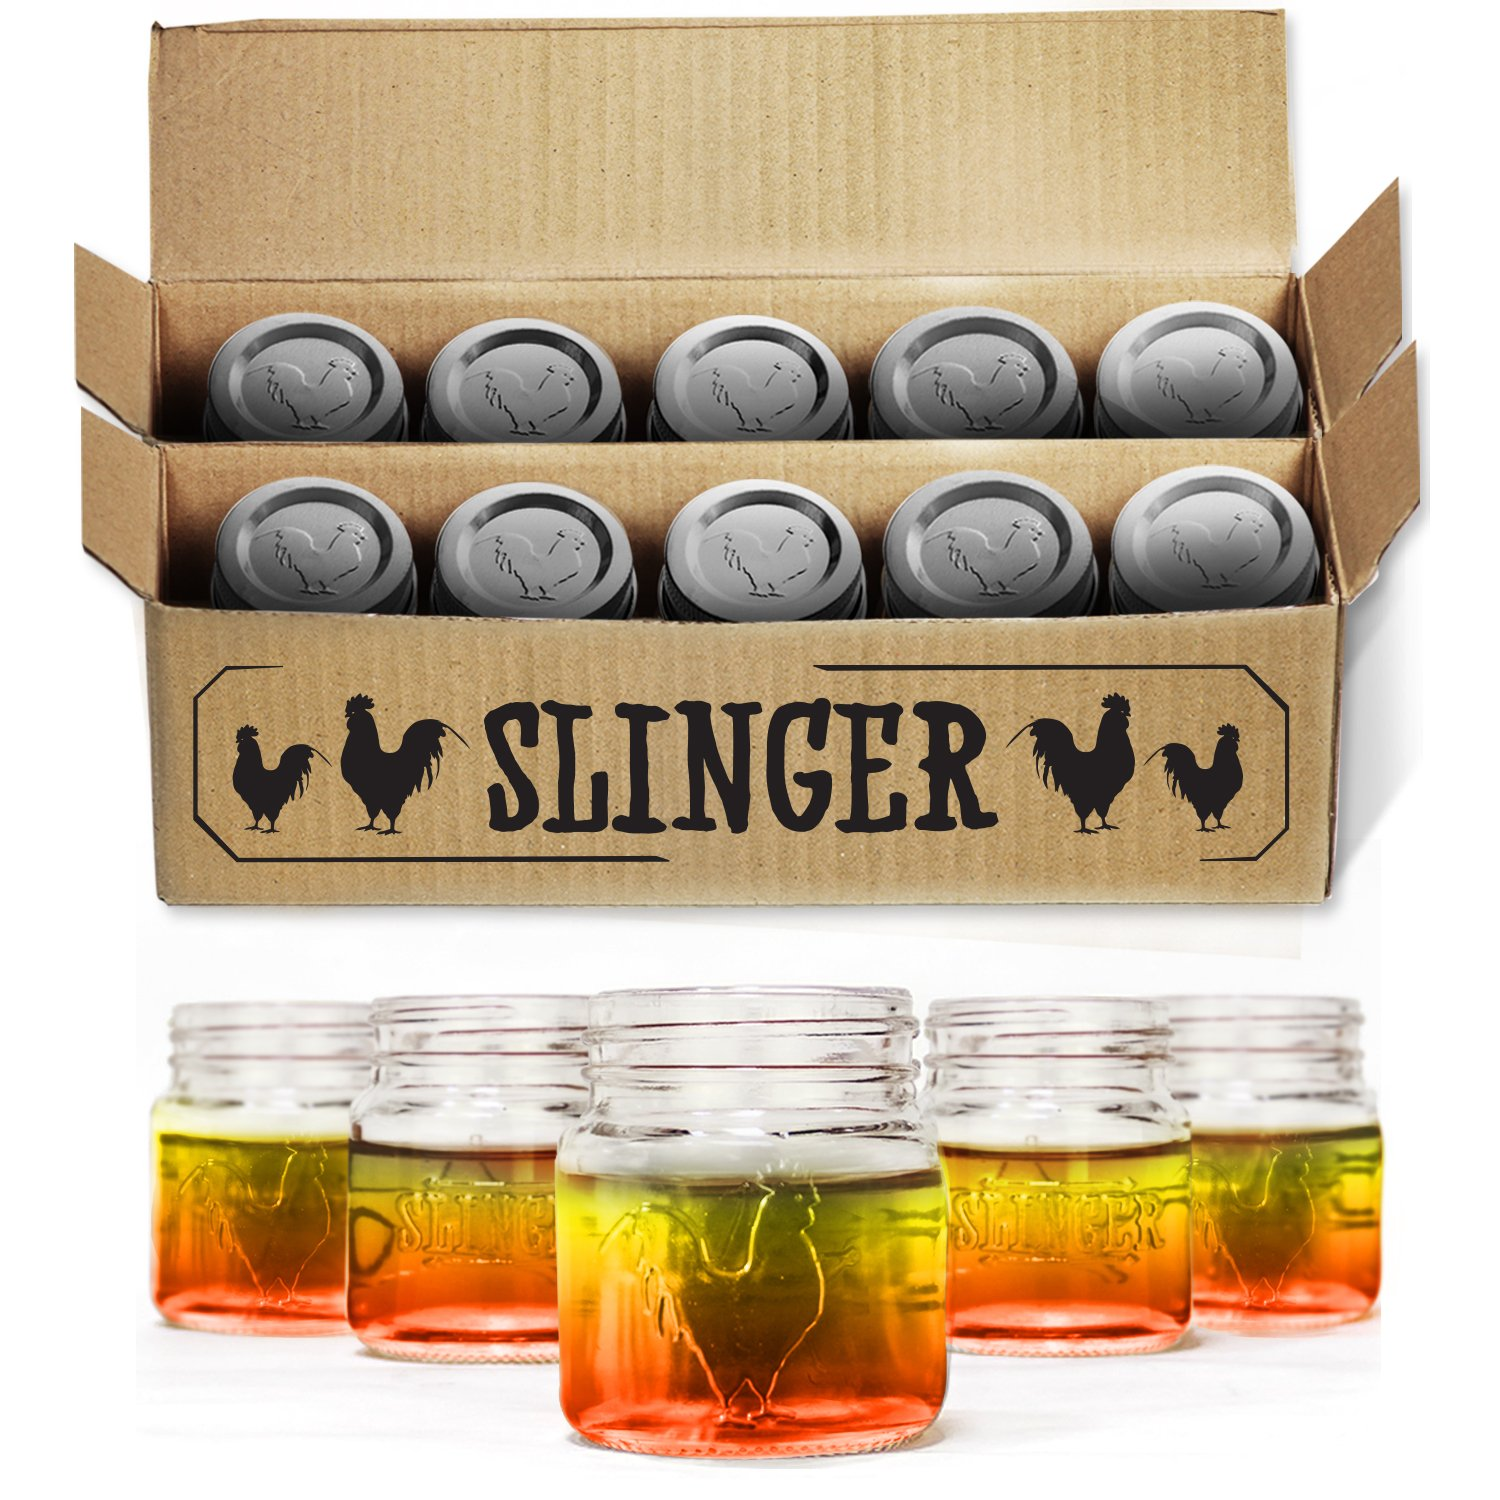 The Rooster Mason Jar Shot Glasses Set - Mini Mason Jars with Lids Featuring Unique Rooster Design (10 Pack) by The Slinger